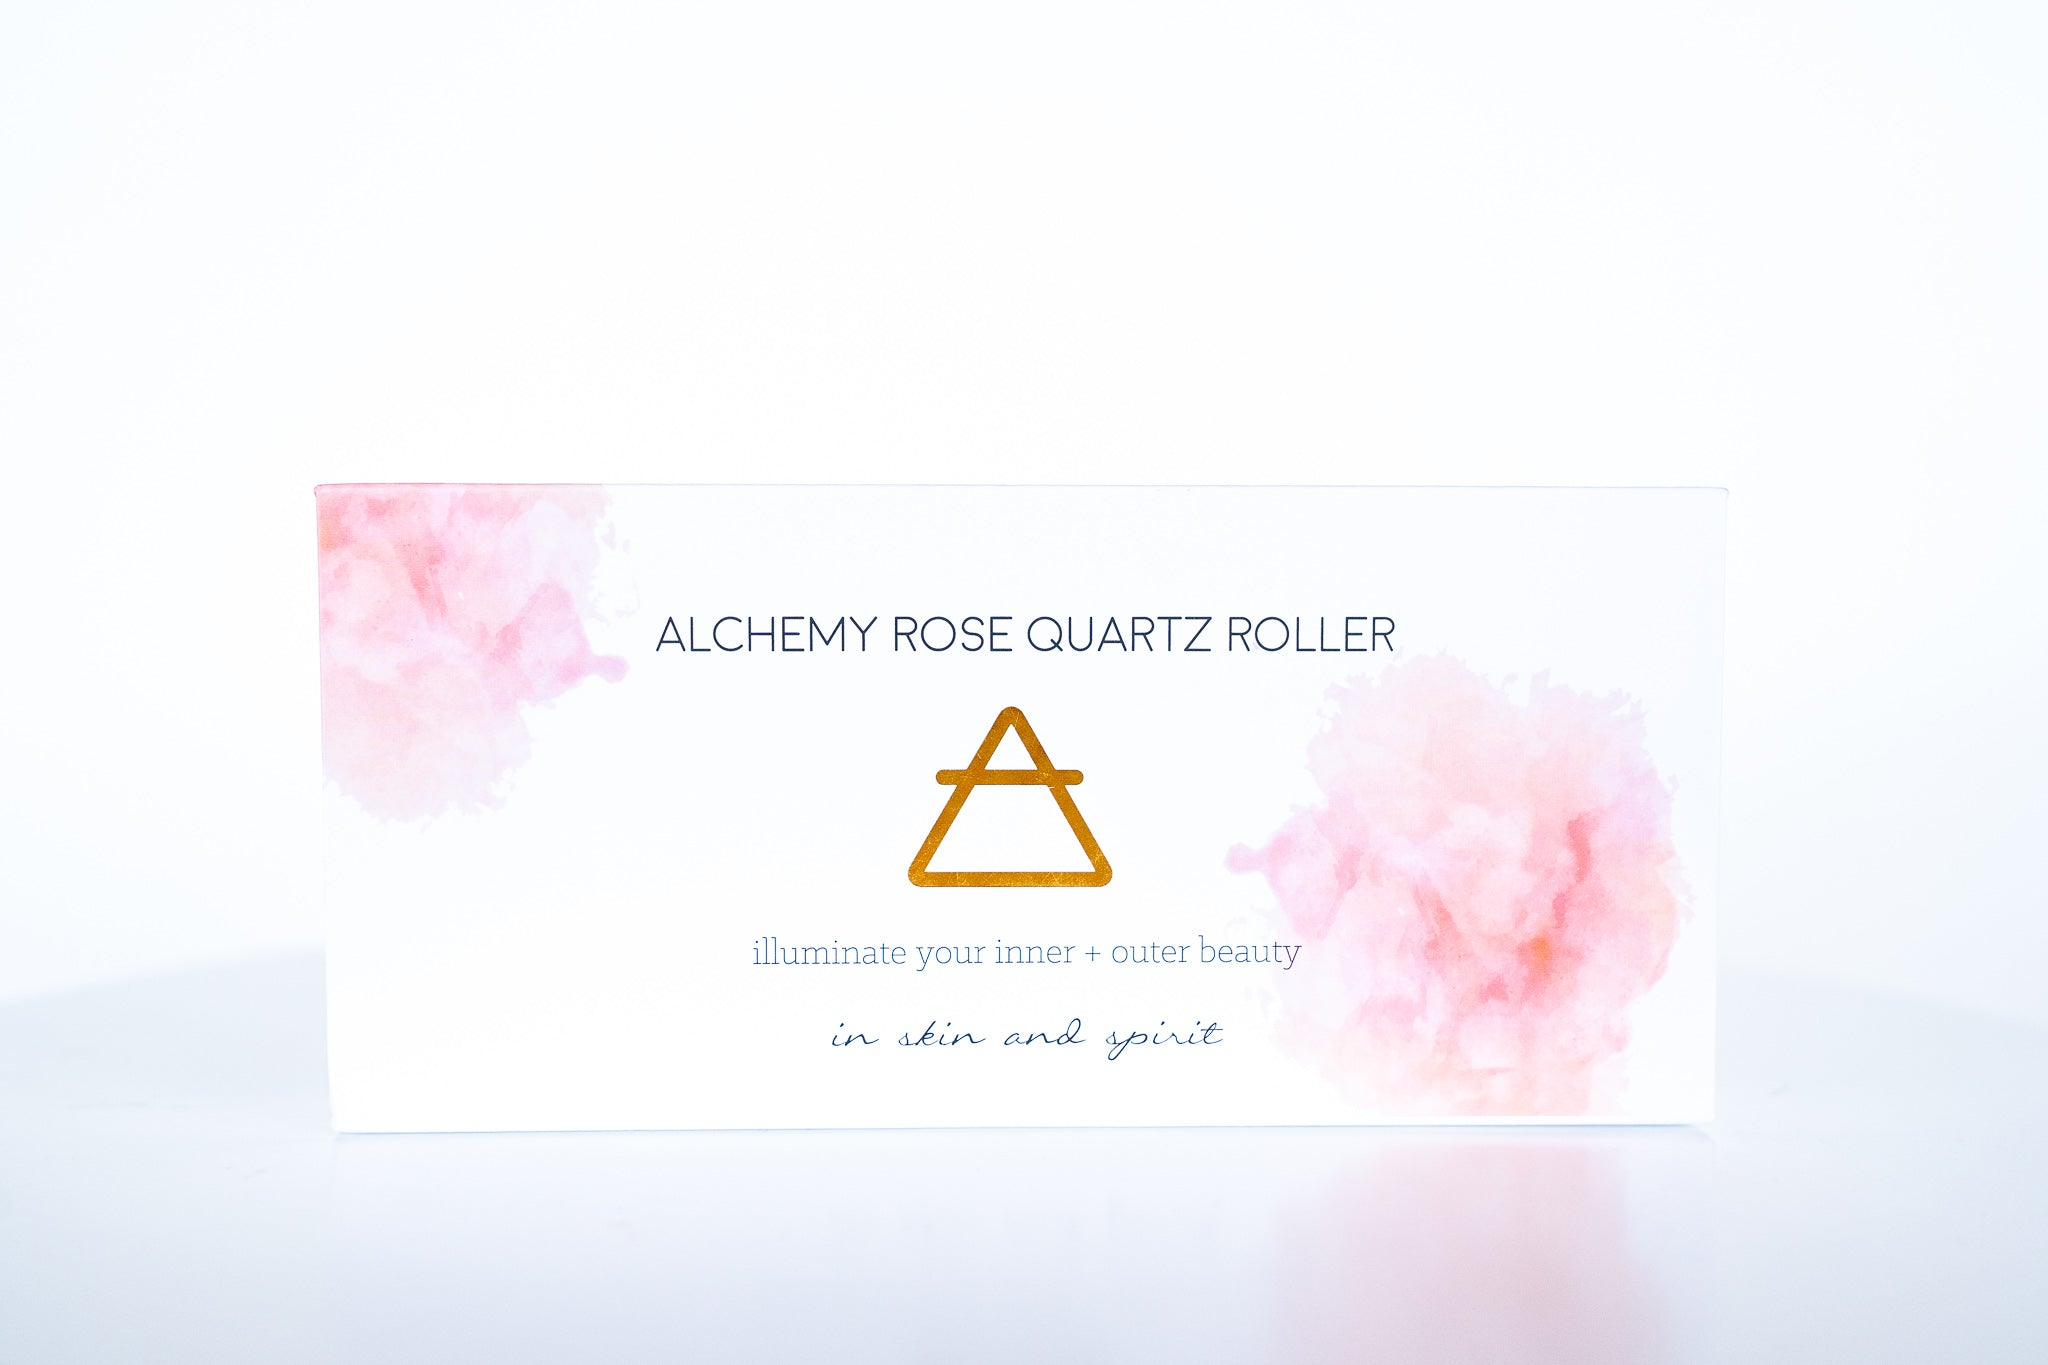 Alchemy Rose Quartz Roller